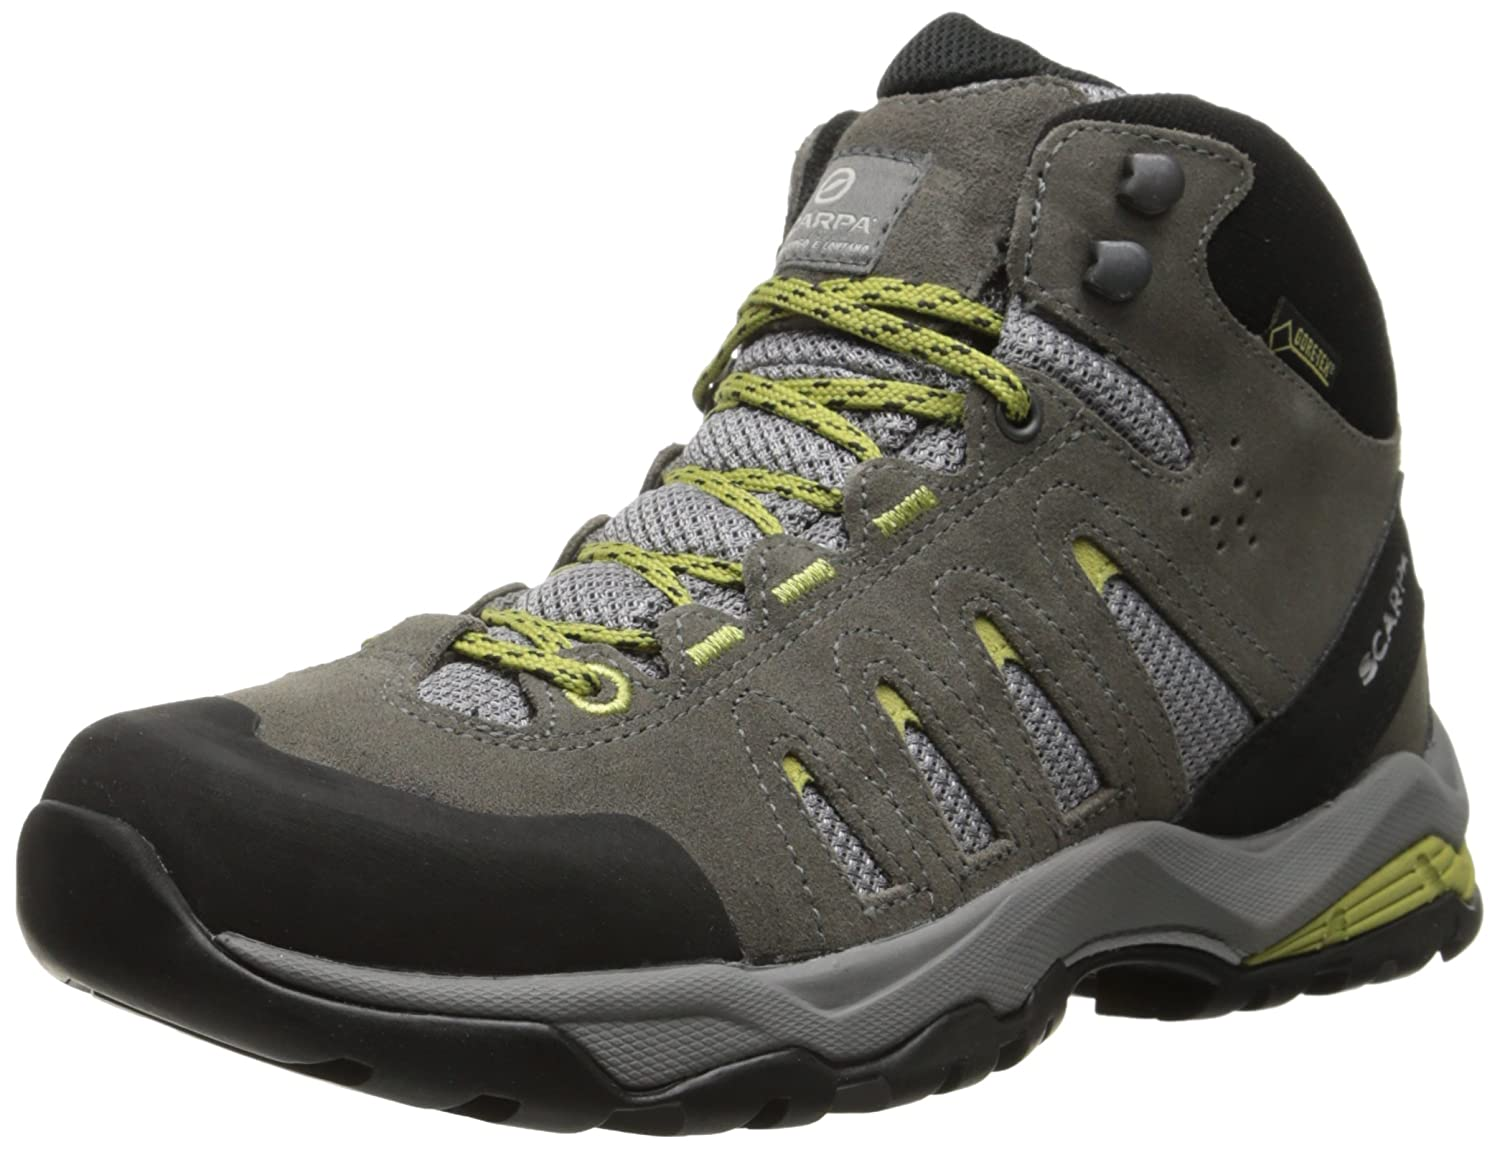 SCARPA Women's Moraine Mid GTX Hiking Shoe B00LM6N1IY 39 M EU / 7.5 B(M) US|Dark Grey/Celery